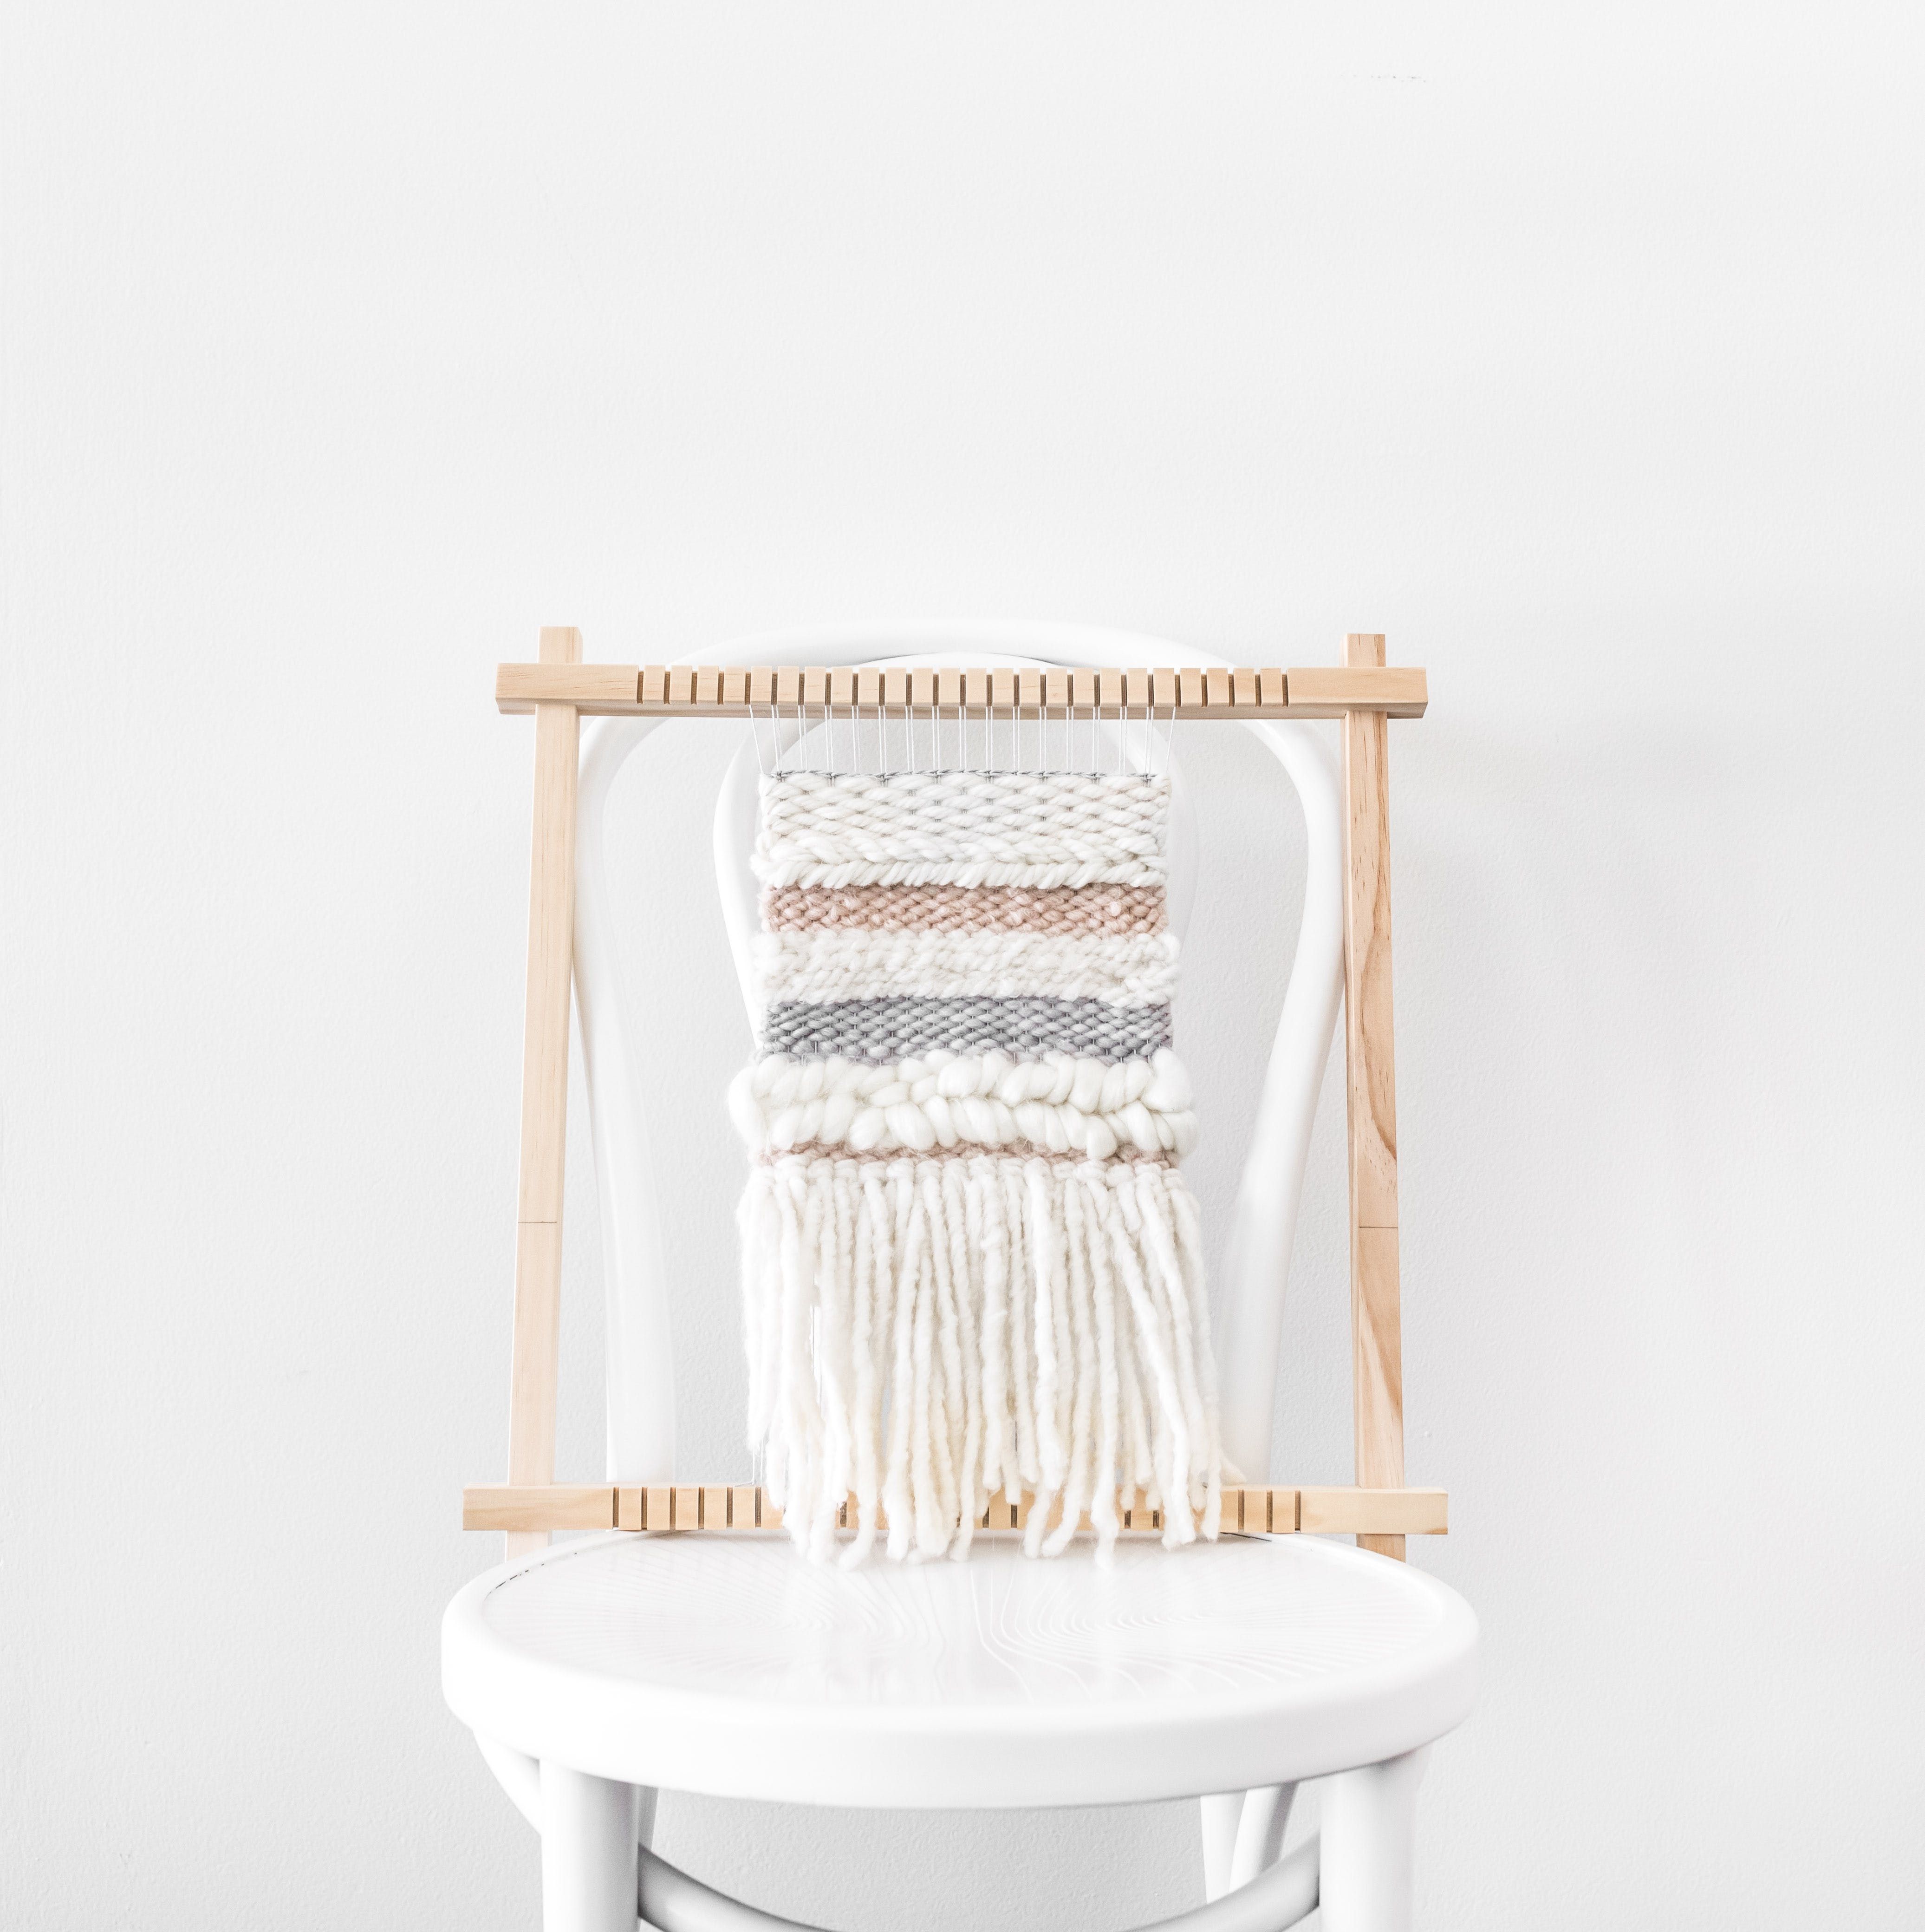 Weave a Wall Hanging - eAccommodation